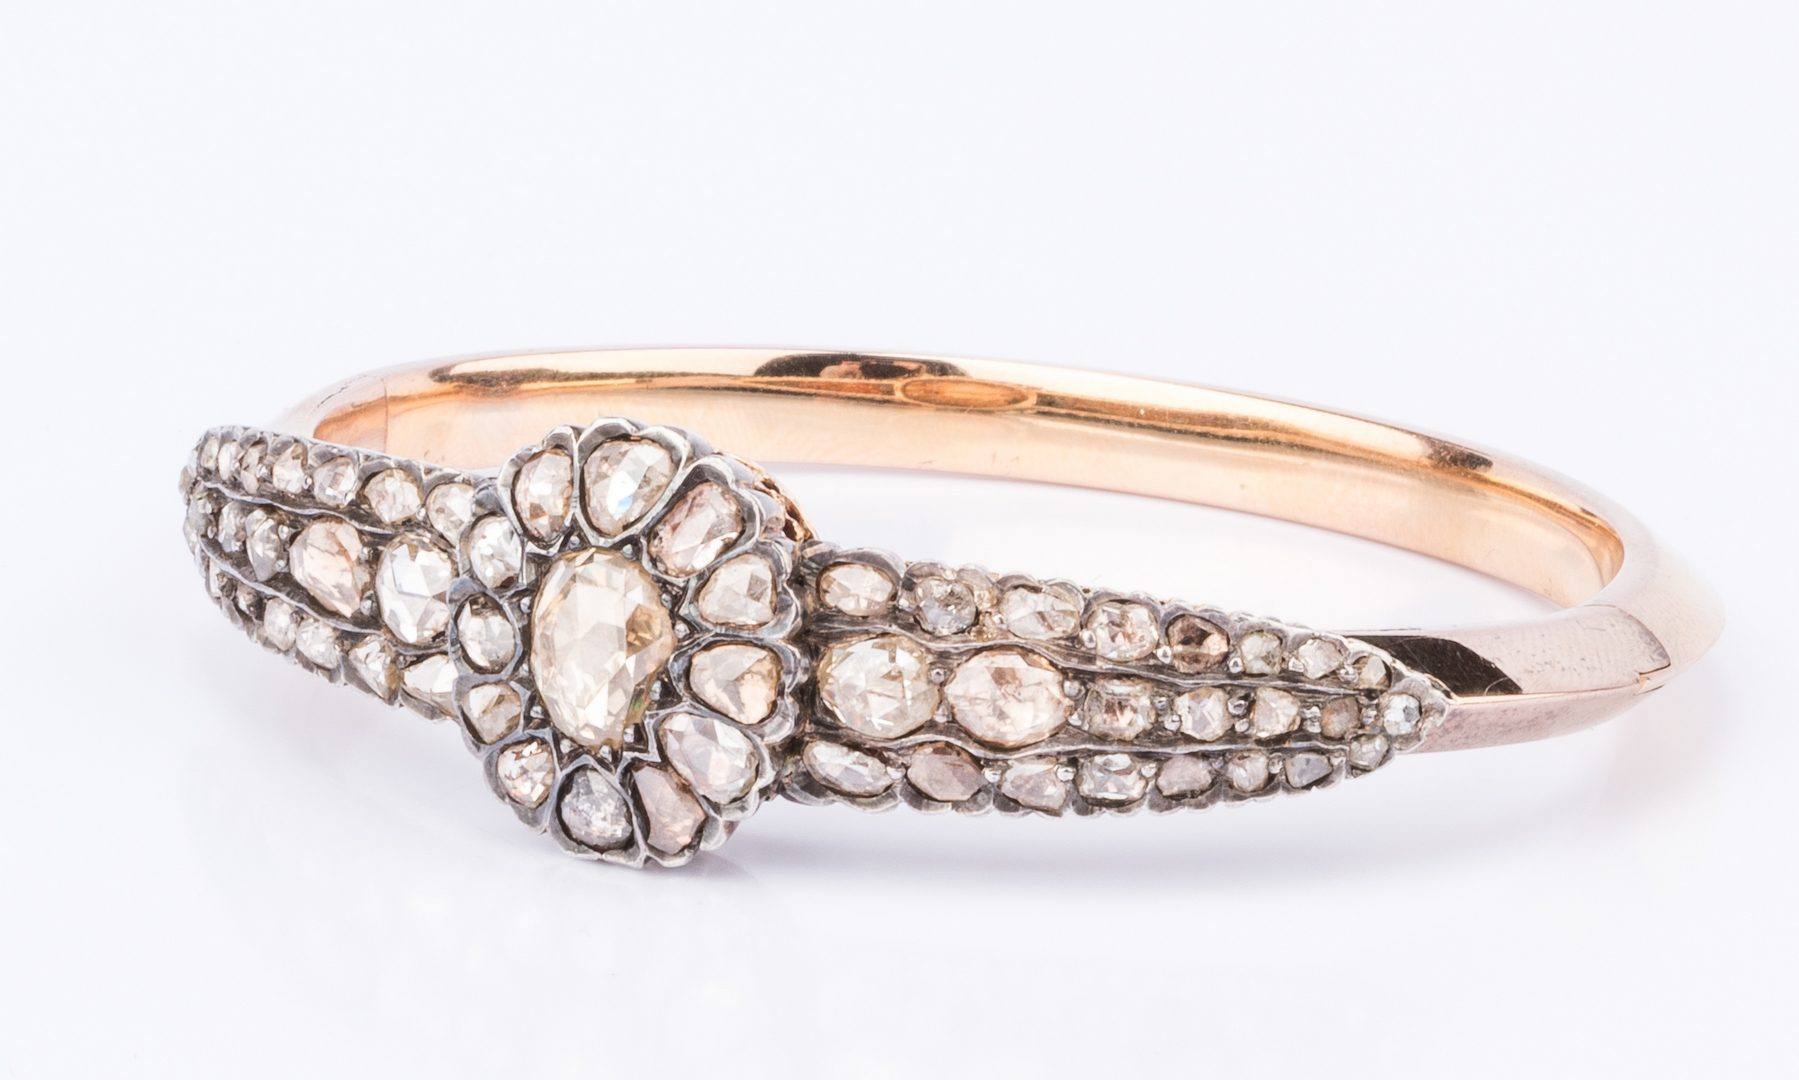 Lot 44: Late Georgian 18K Diamond Bangle